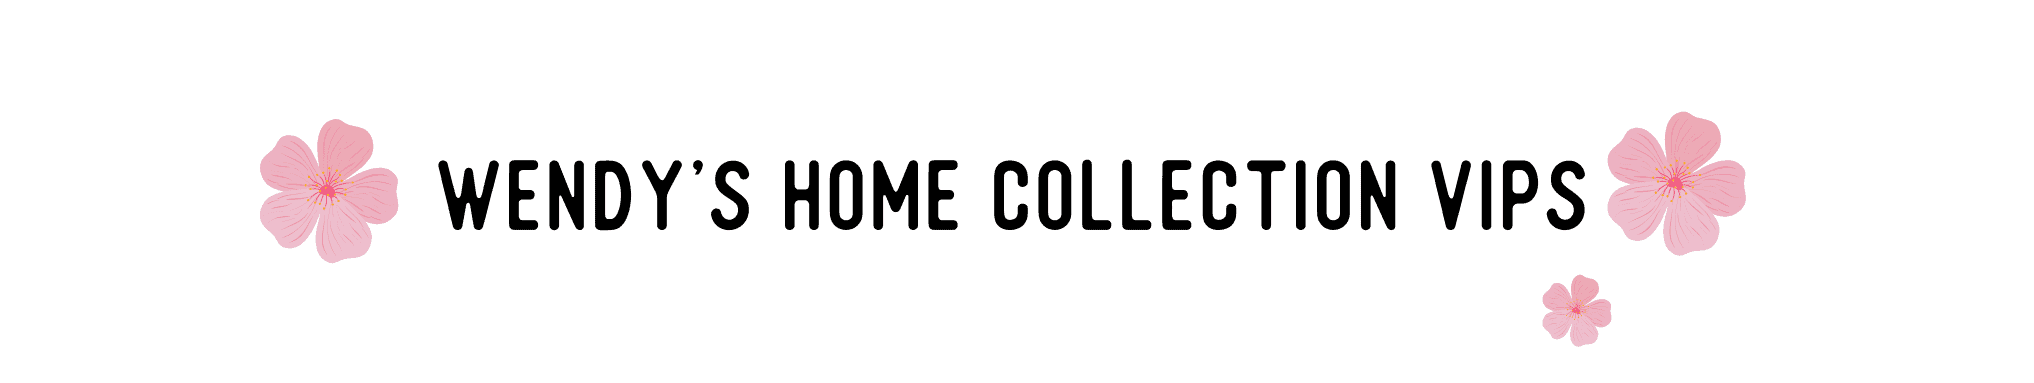 wendy's home collection vips